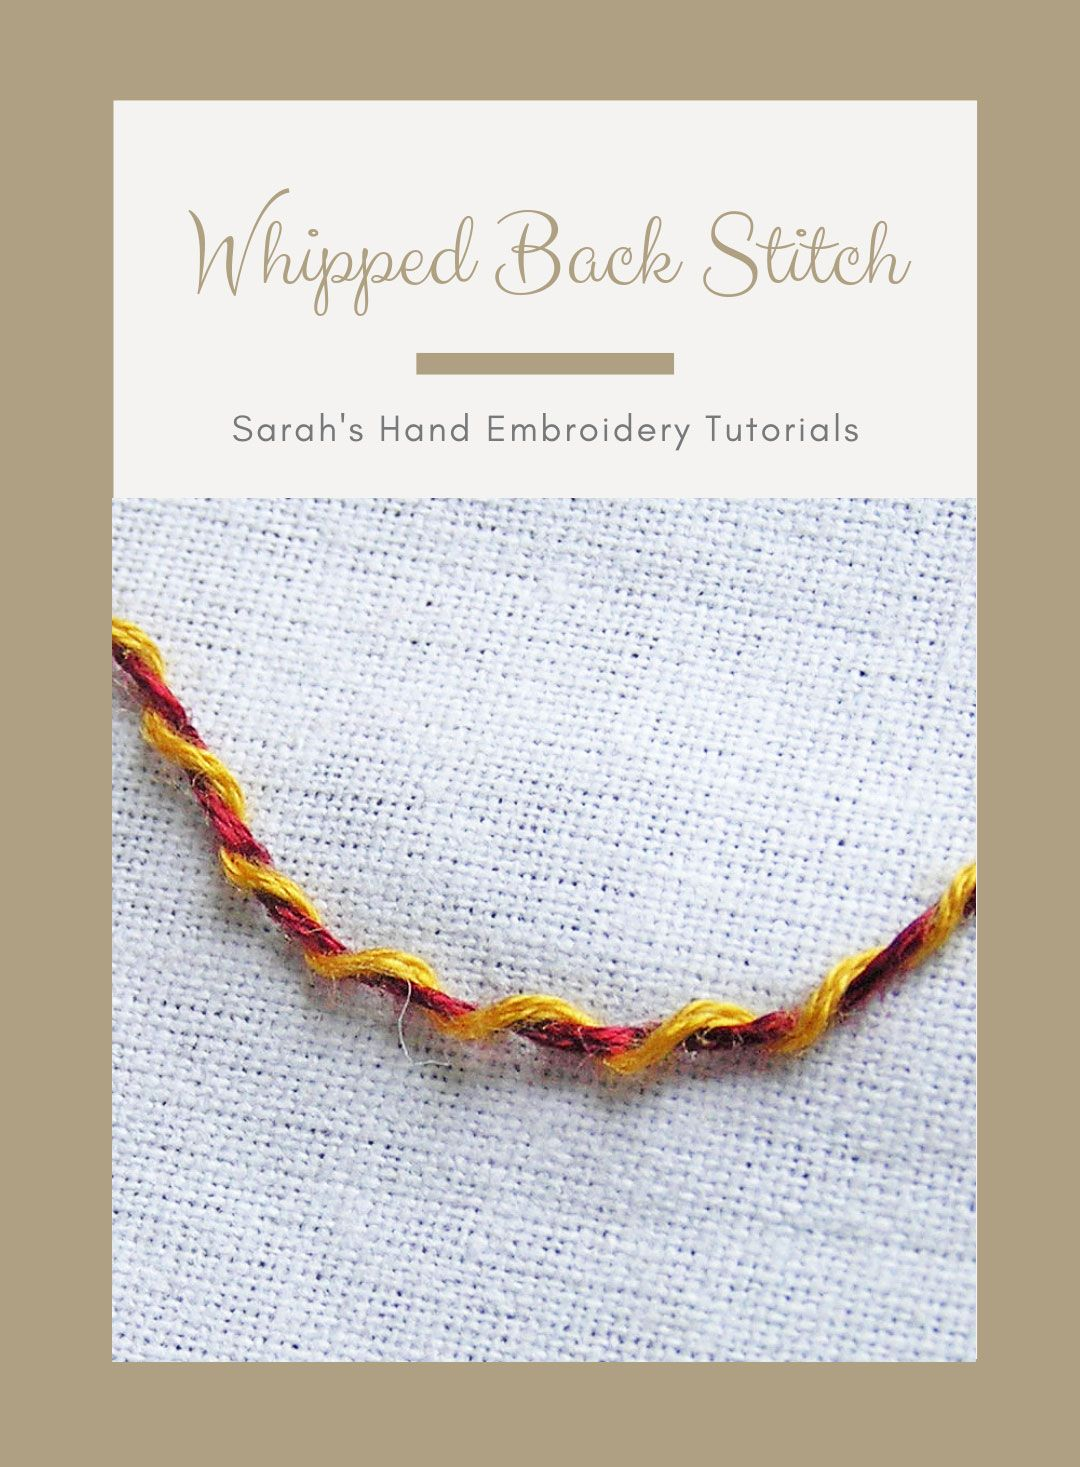 How To Do The Whipped Back Stitch Sarah S Hand Embroidery Tutorials Hand Embroidery Tutorial Embroidery Tutorials Back Stitch